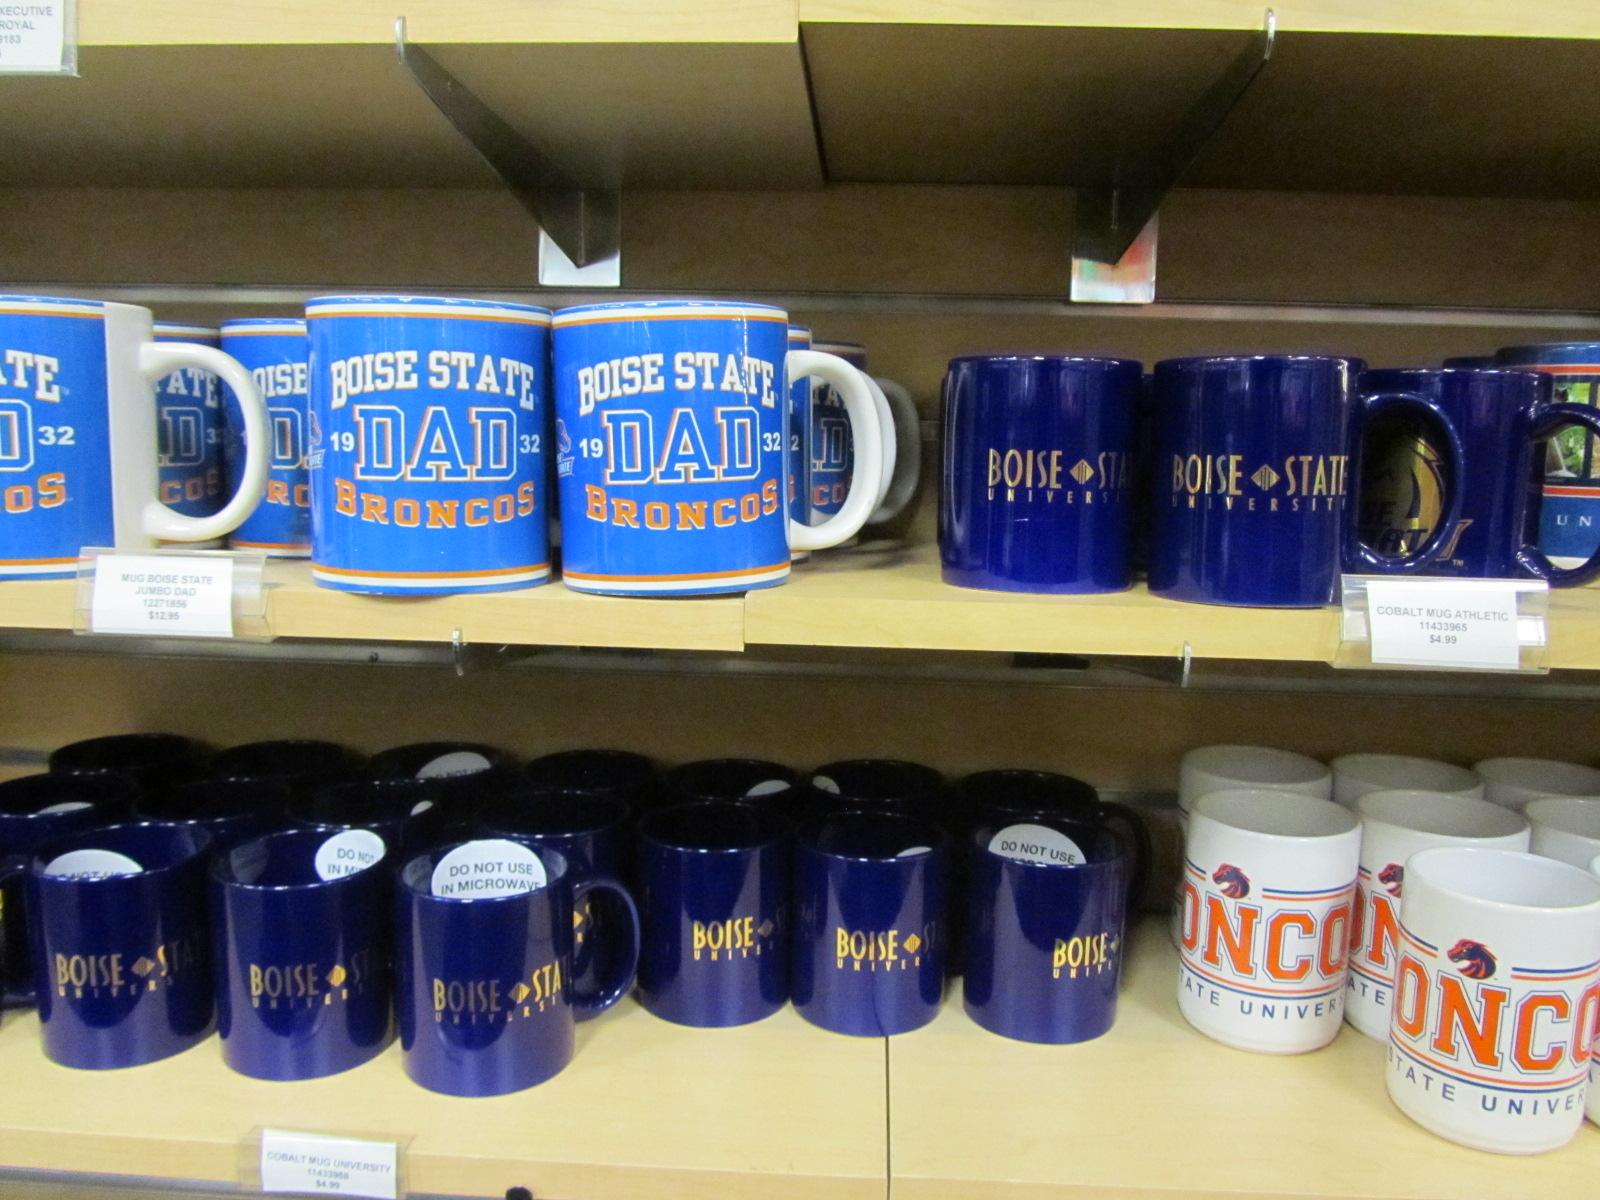 VIEW SLIDESHOW 9 of 10. Boise State merchandise is dominated